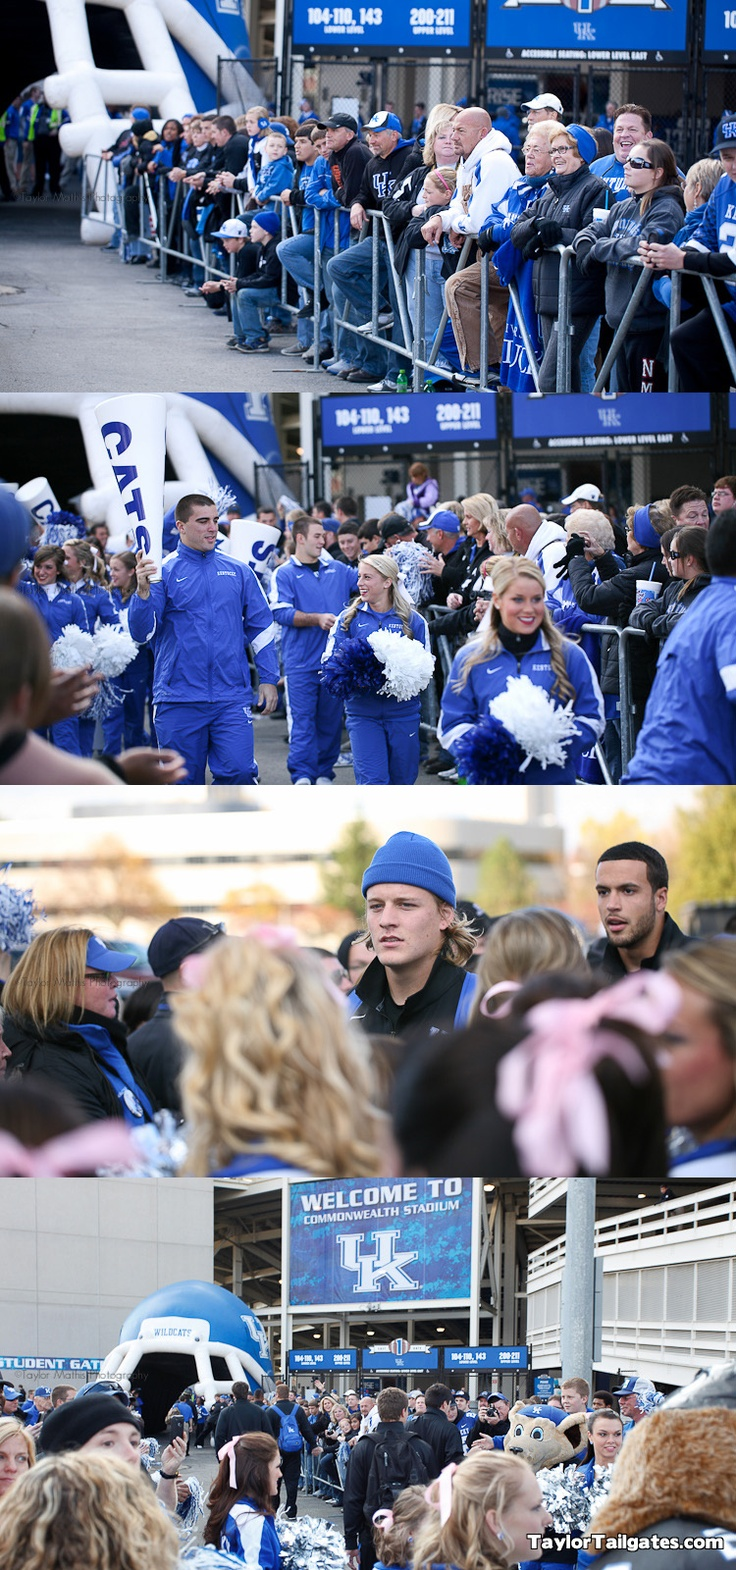 #Kentucky tailgating & Keeneland Races - an SEC tradition hard to match. RollTideWarEagle.com sports stories that inform and entertain, plus #collegefootball rules tutorial. Check out our blog and let us know what you think. #Wildcats